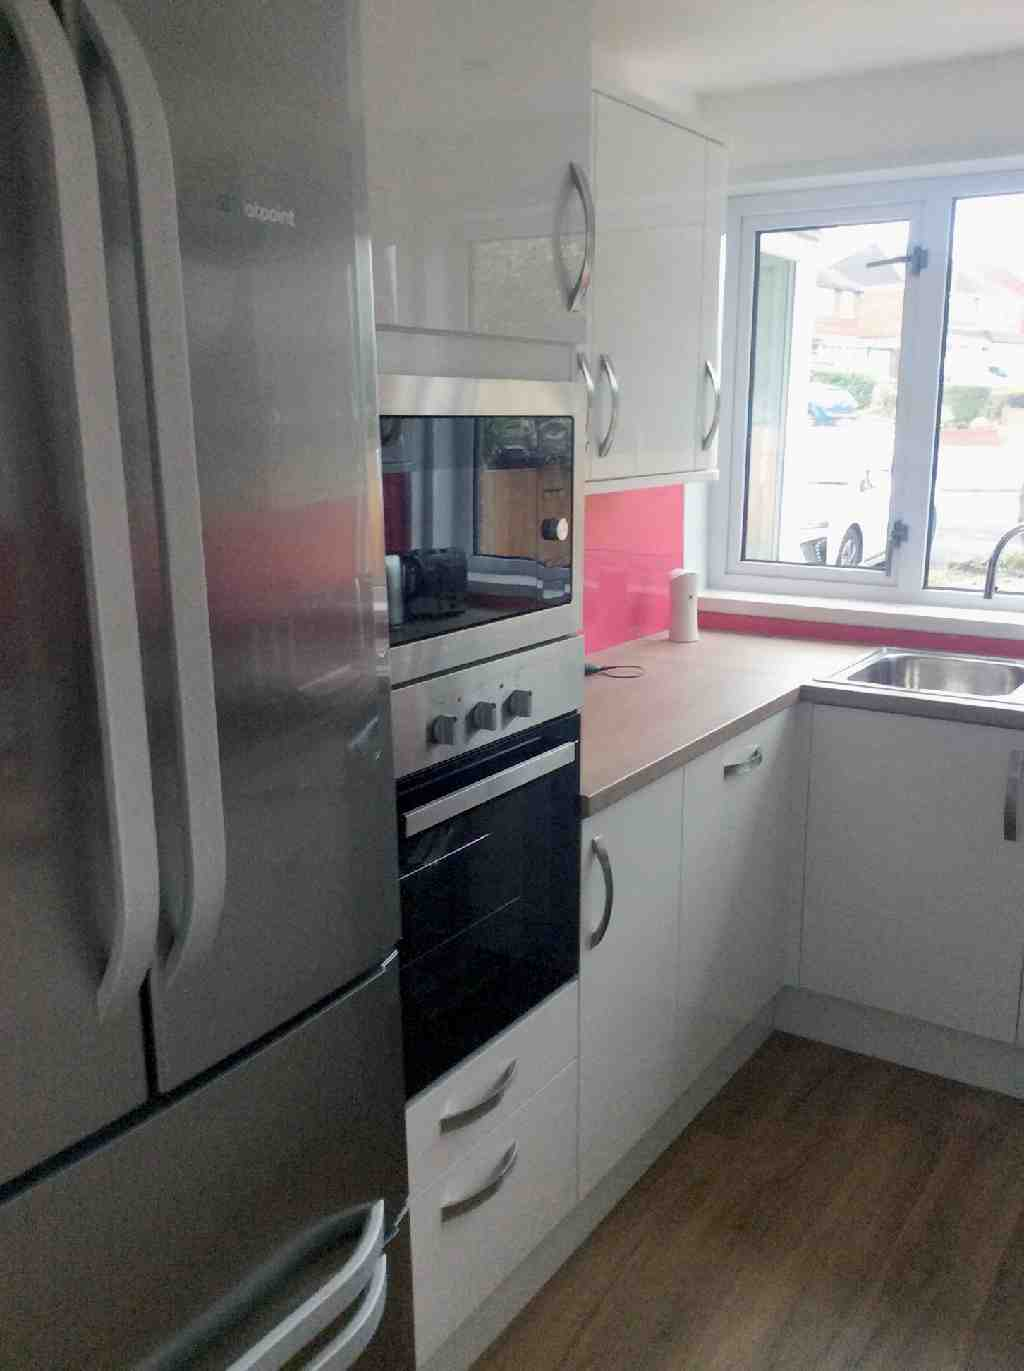 Gallery Kitchens for Visually Impaired Great Barr Birmingham 08